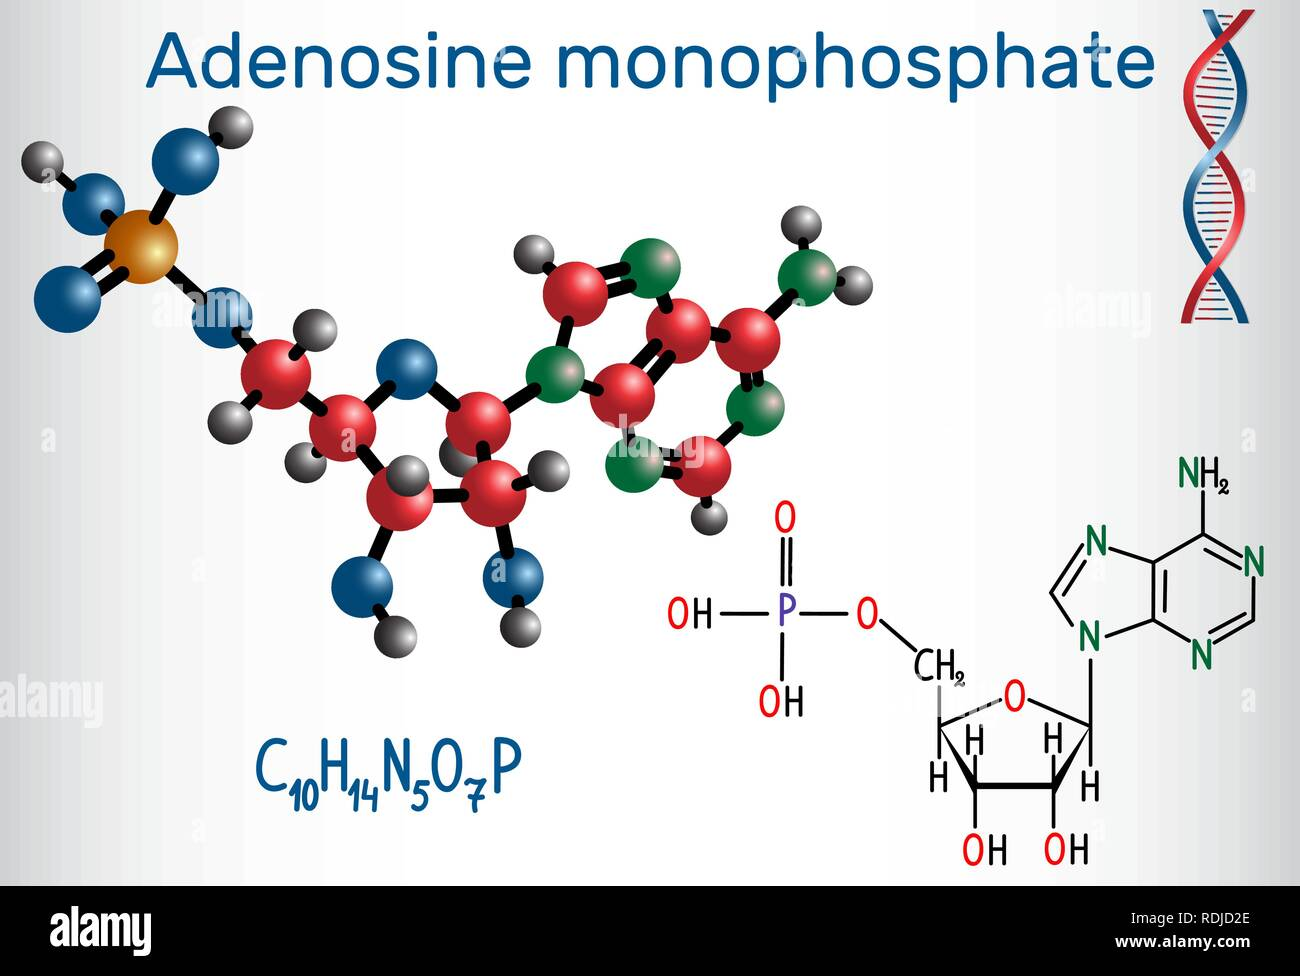 Adenosine monophosphate (AMP) molecule, it is an ester of phosphoric acid and the nucleoside adenosine monomer in the production RNA . Structural chem - Stock Image